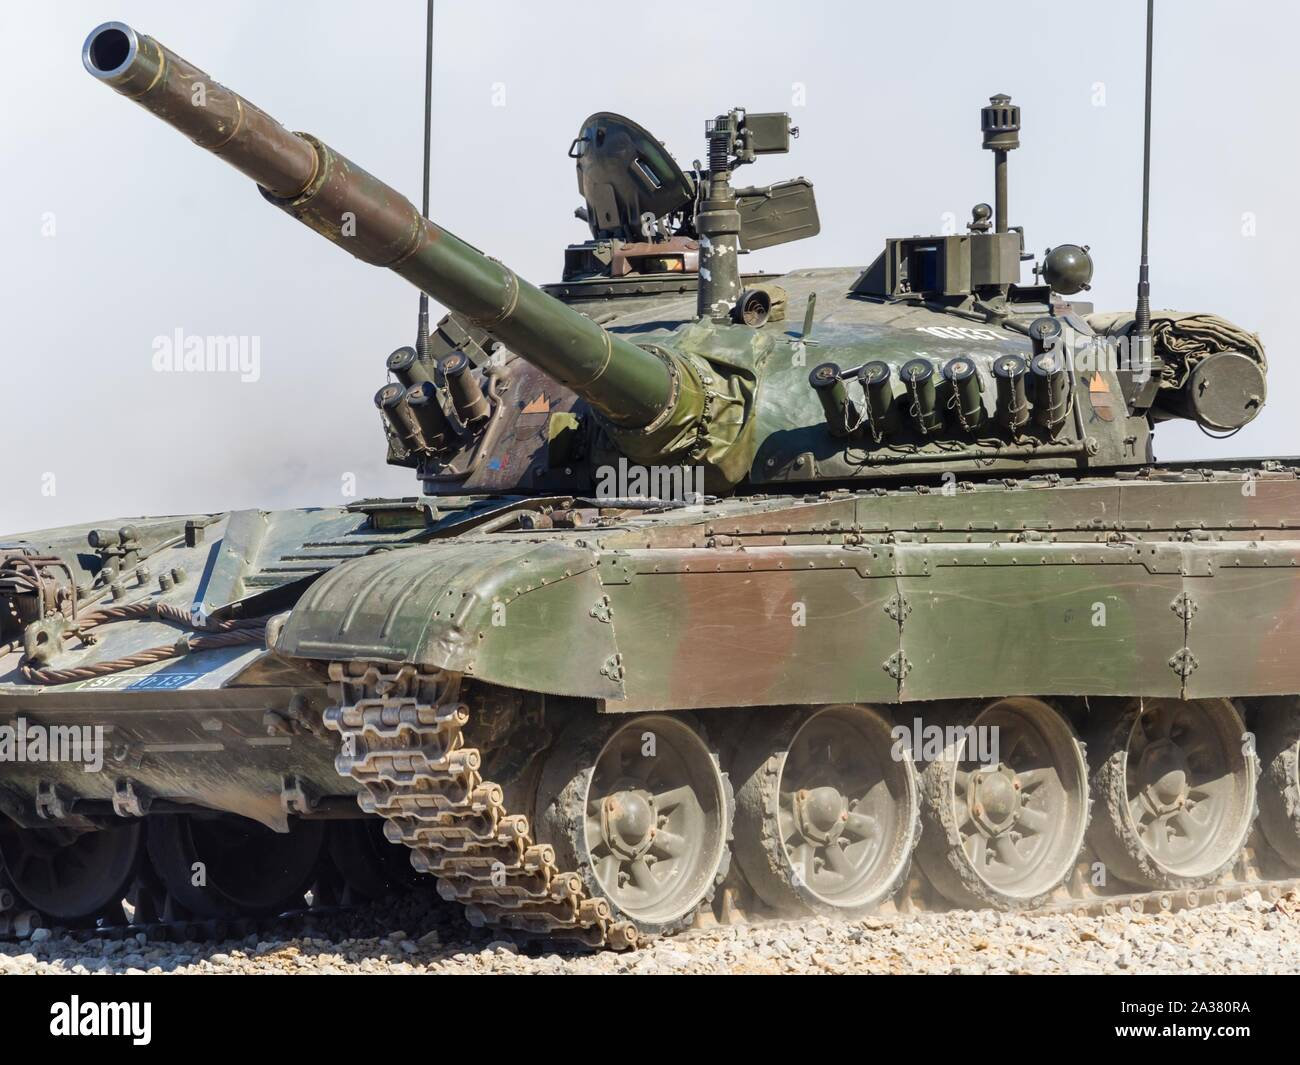 Slovenian armed forces M84 tank driving demonstration in Pivka Slovenia Stock Photo